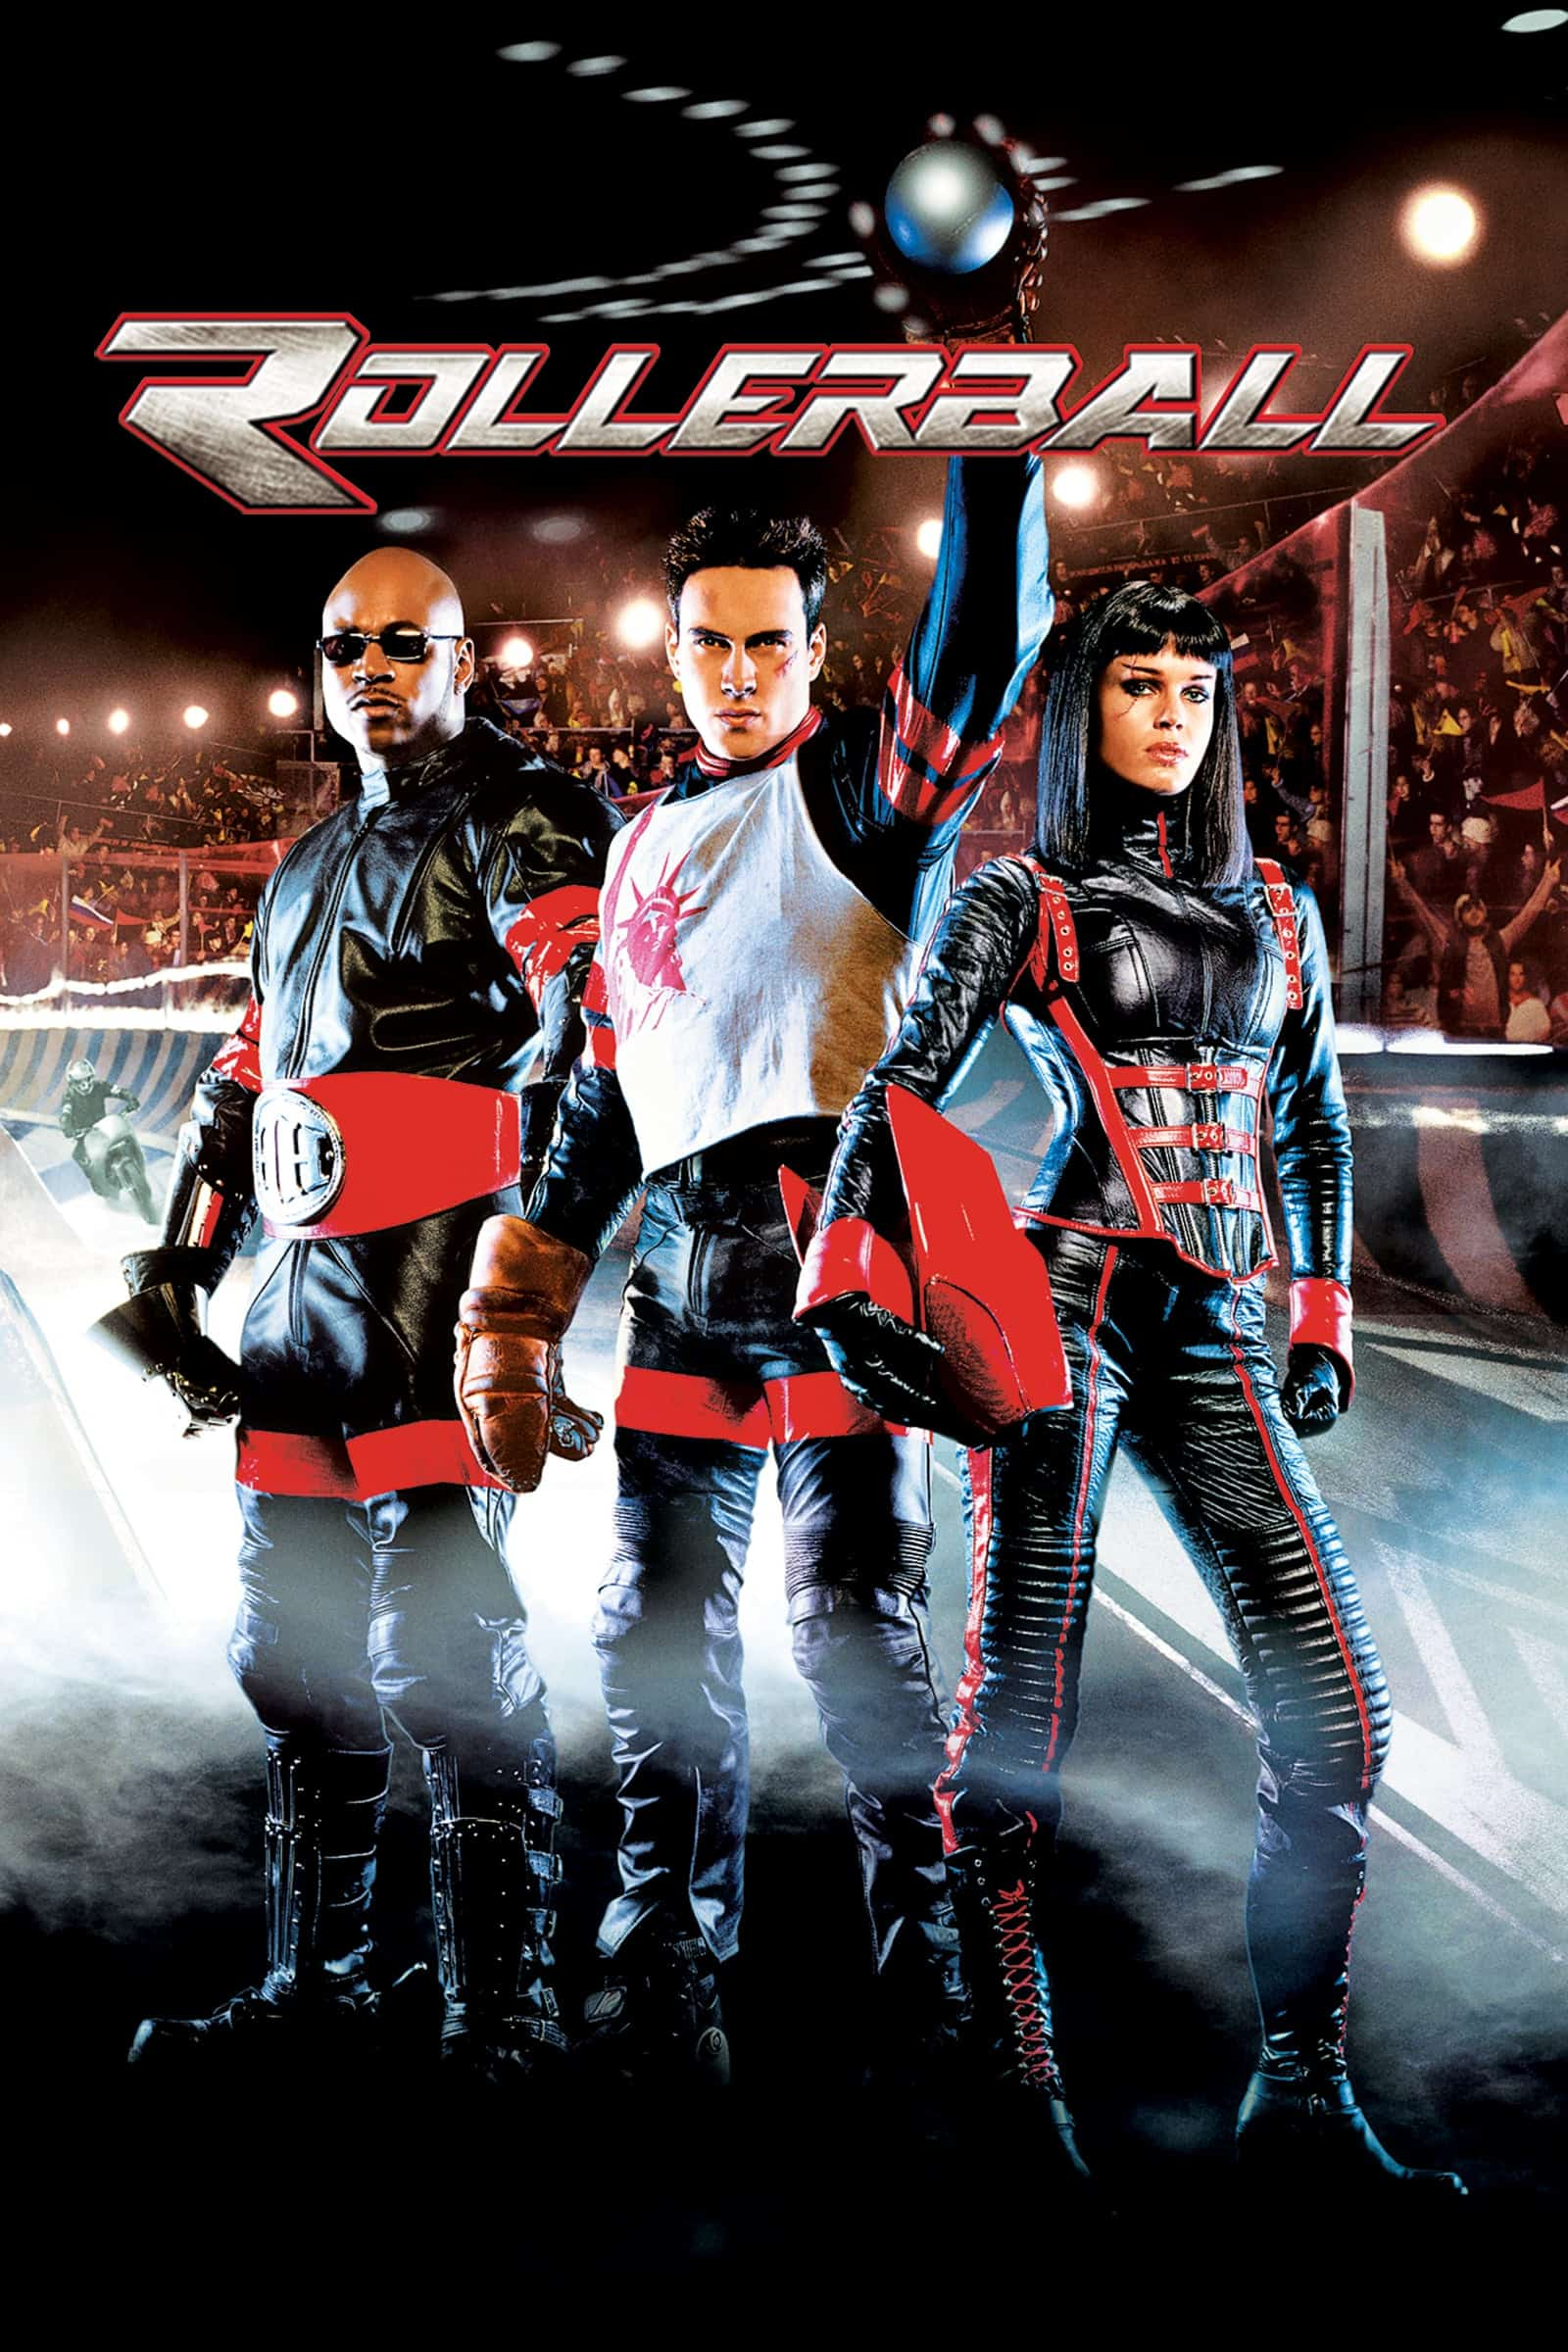 Rollerball, 2002